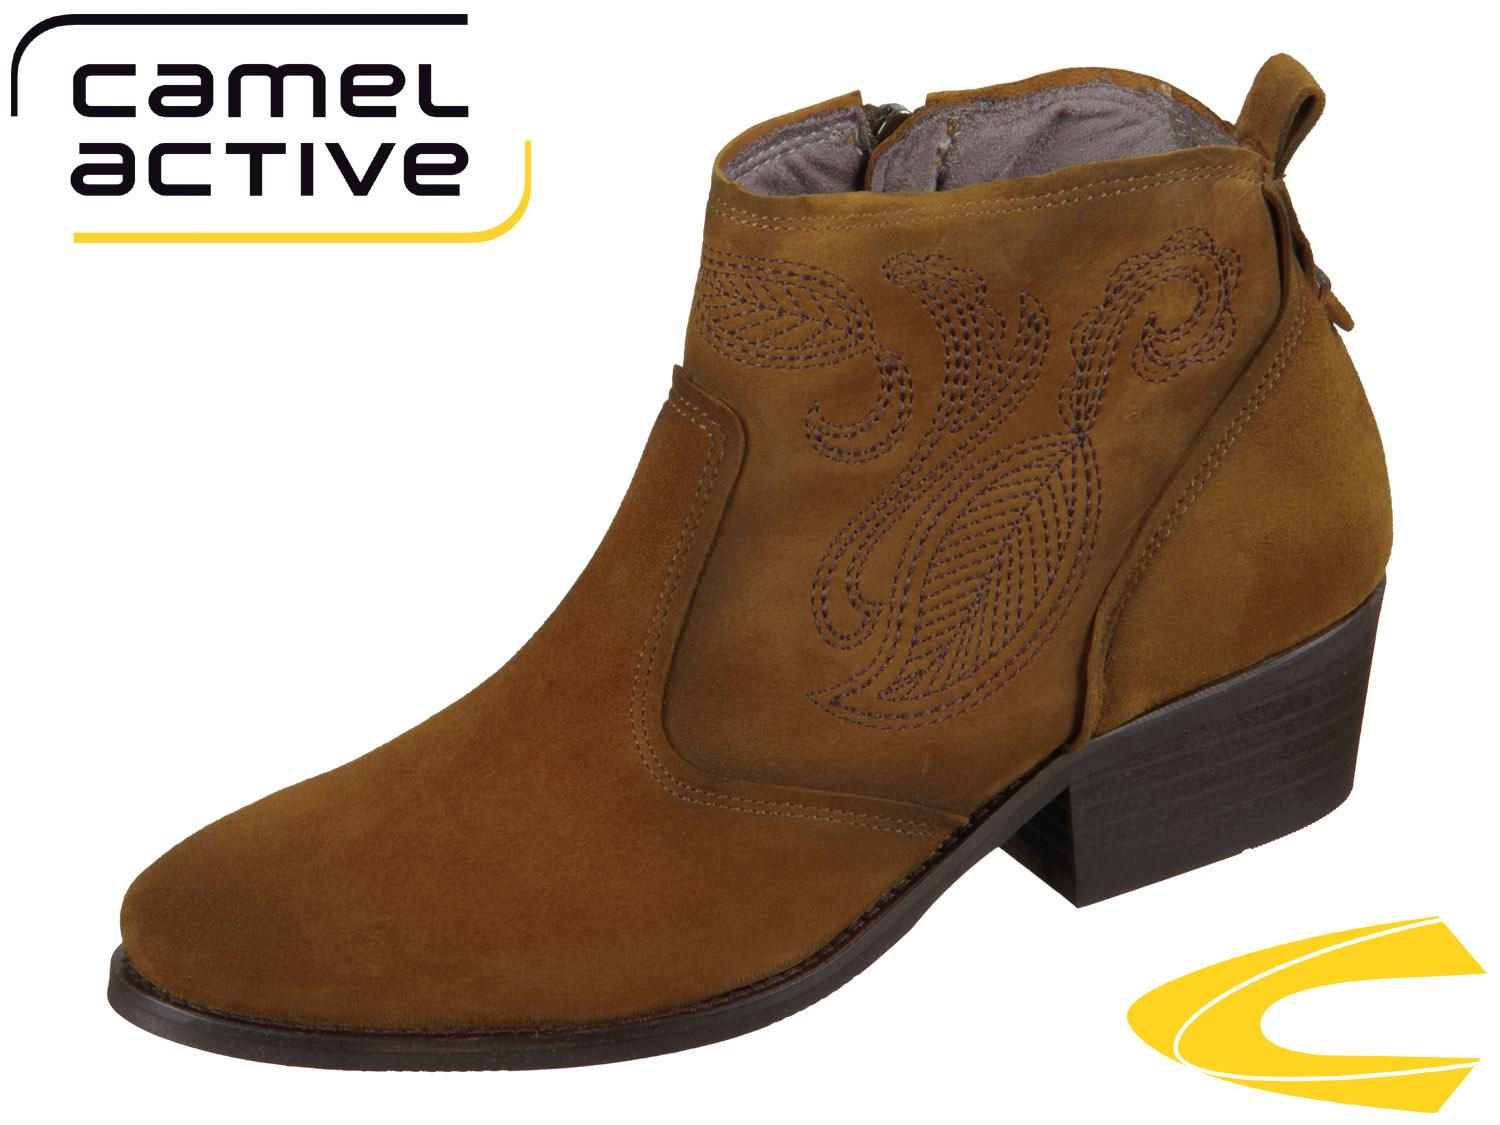 new arrivals 2f0ab 96e95 camel active Westend 903.70-02 fox Goat Suede